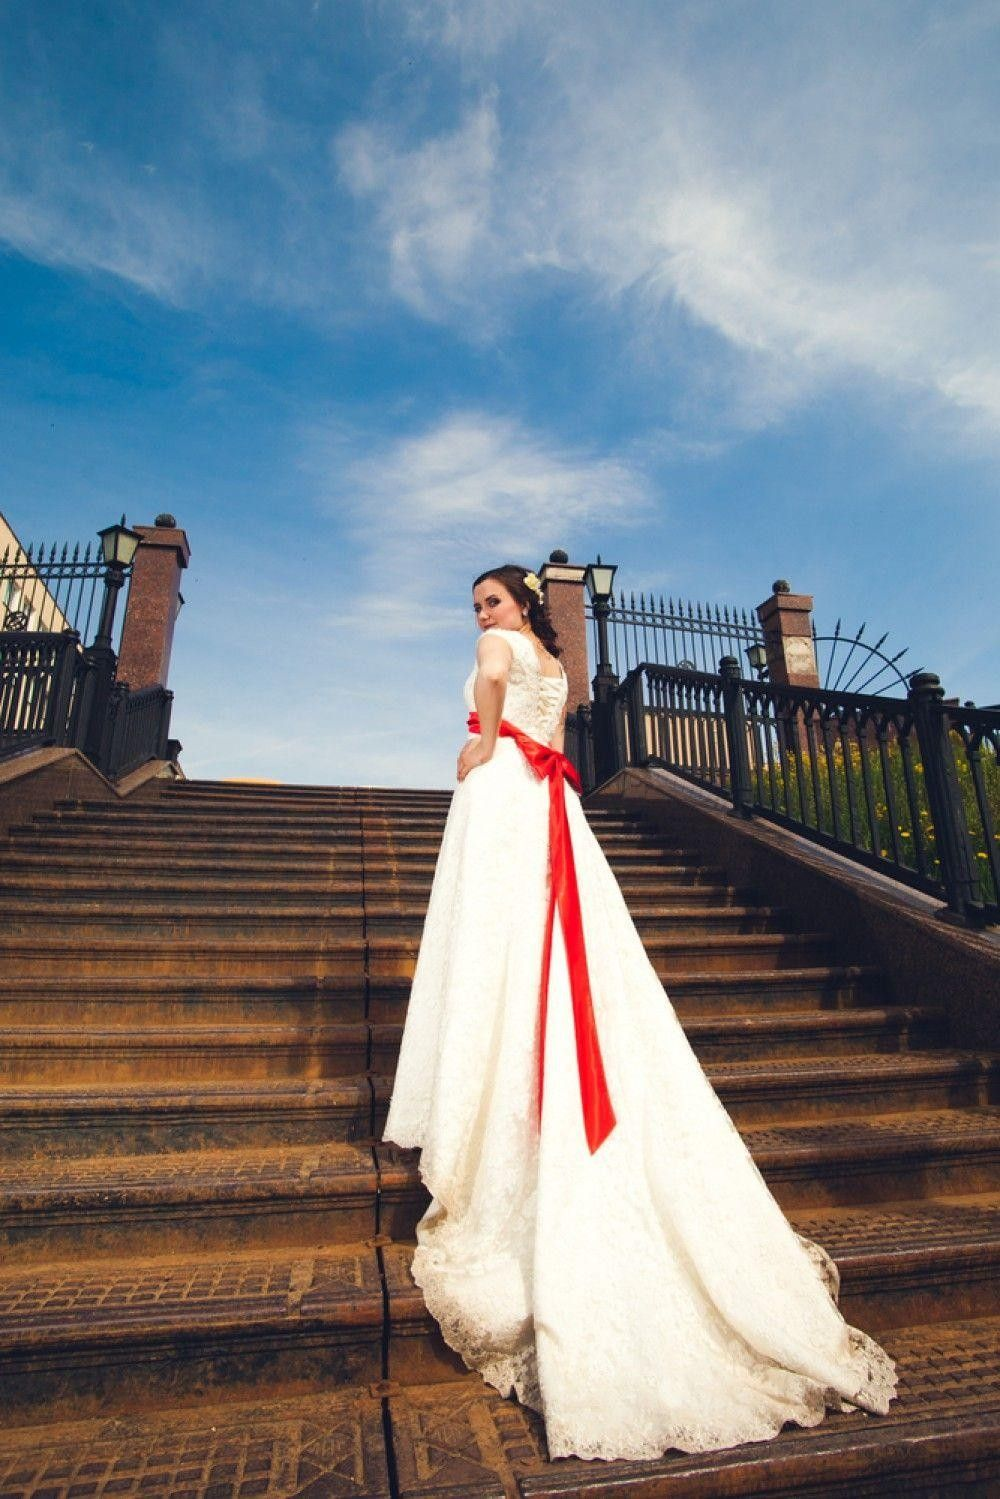 Bride with a very long tail wedding dress